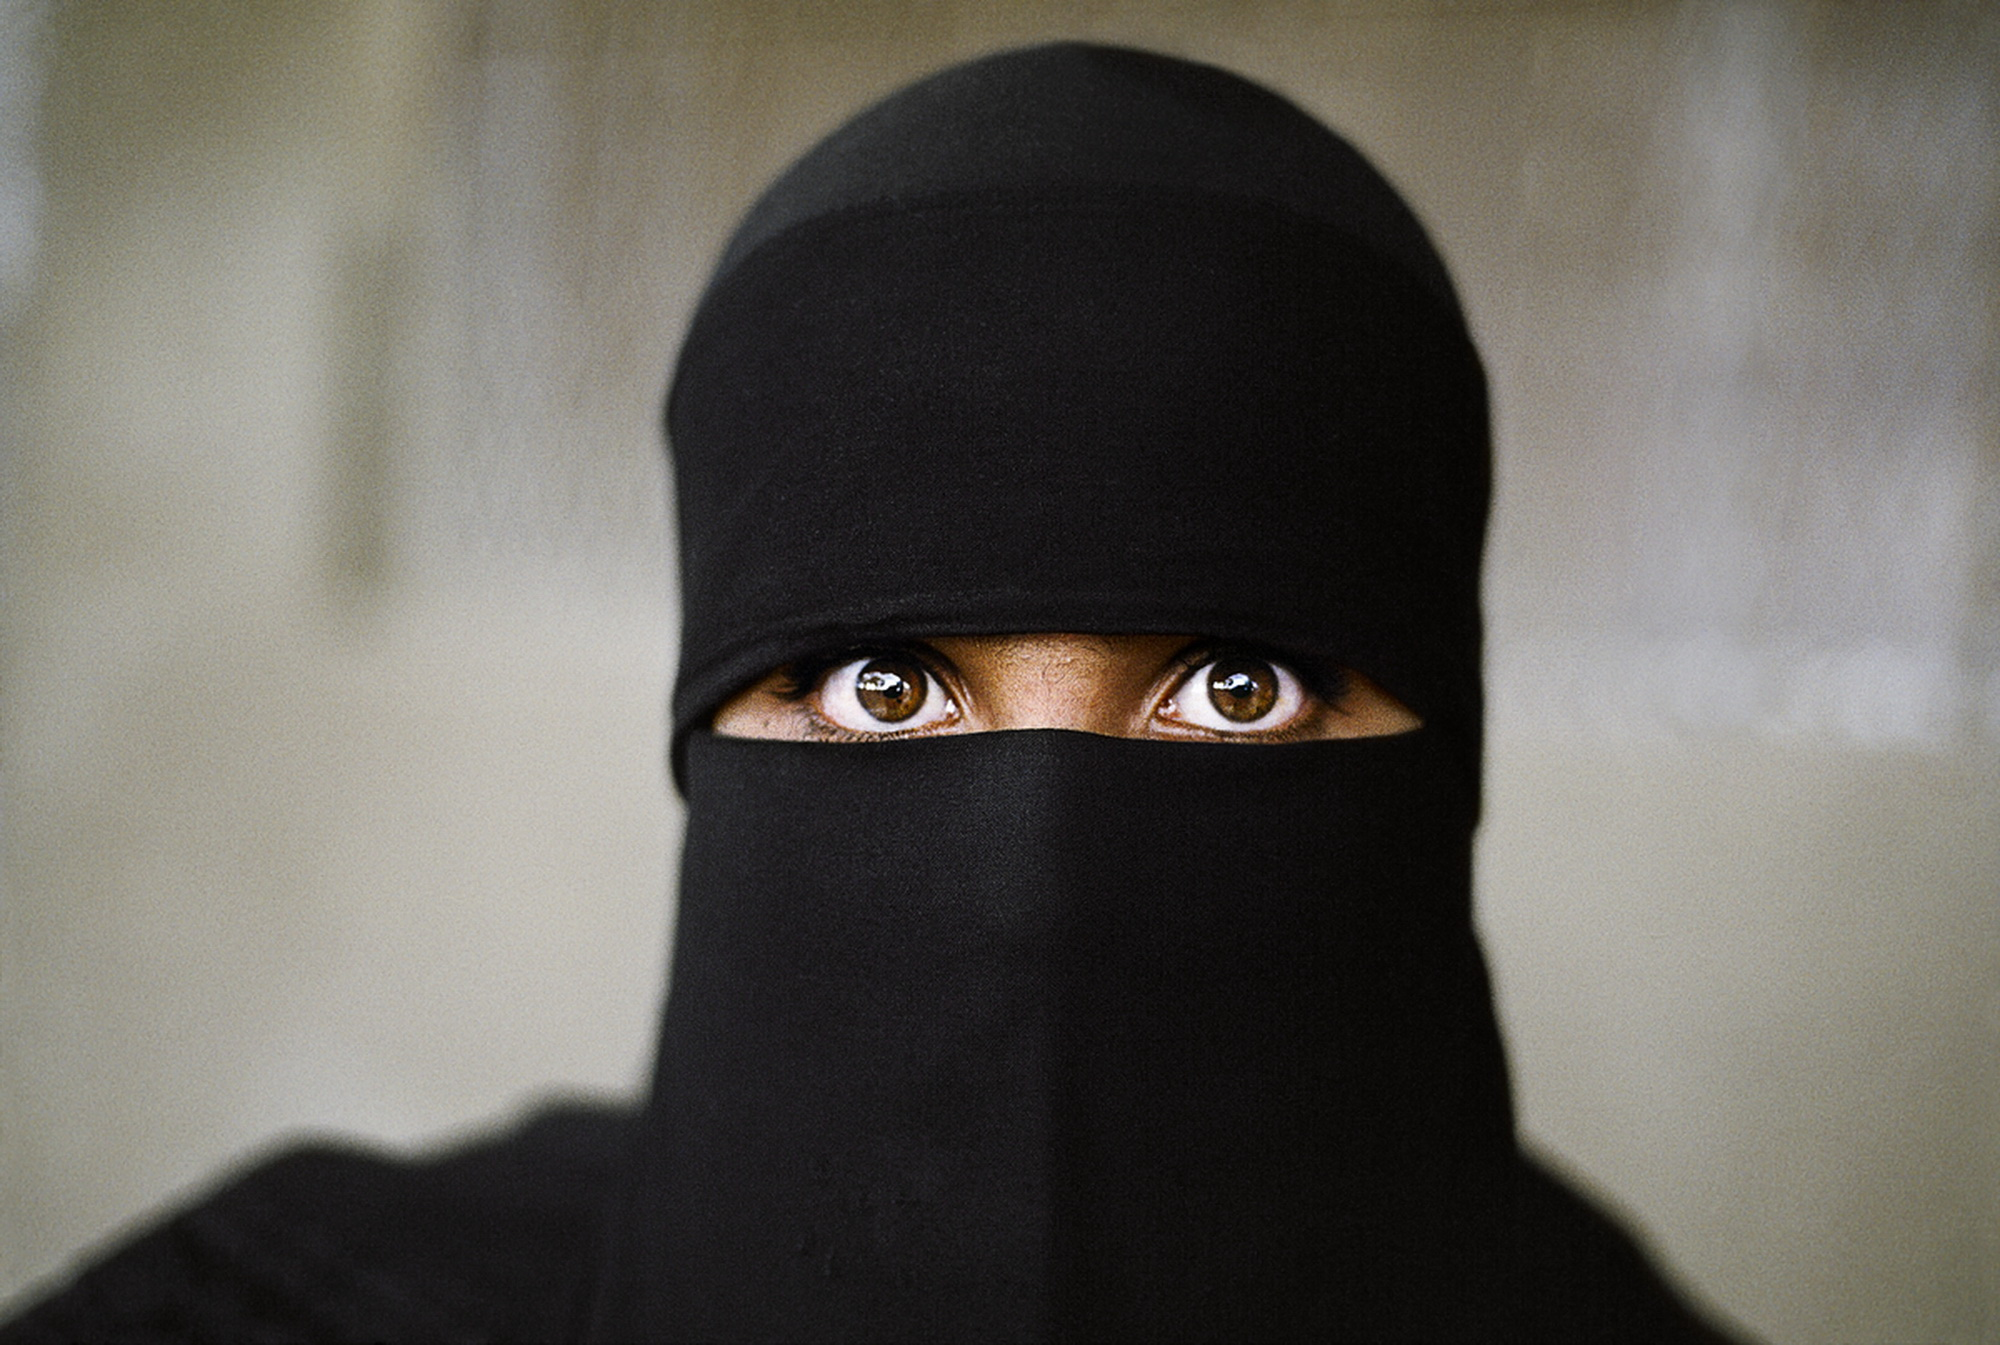 Sanaa, Yemen - Photo : Steve McCurry